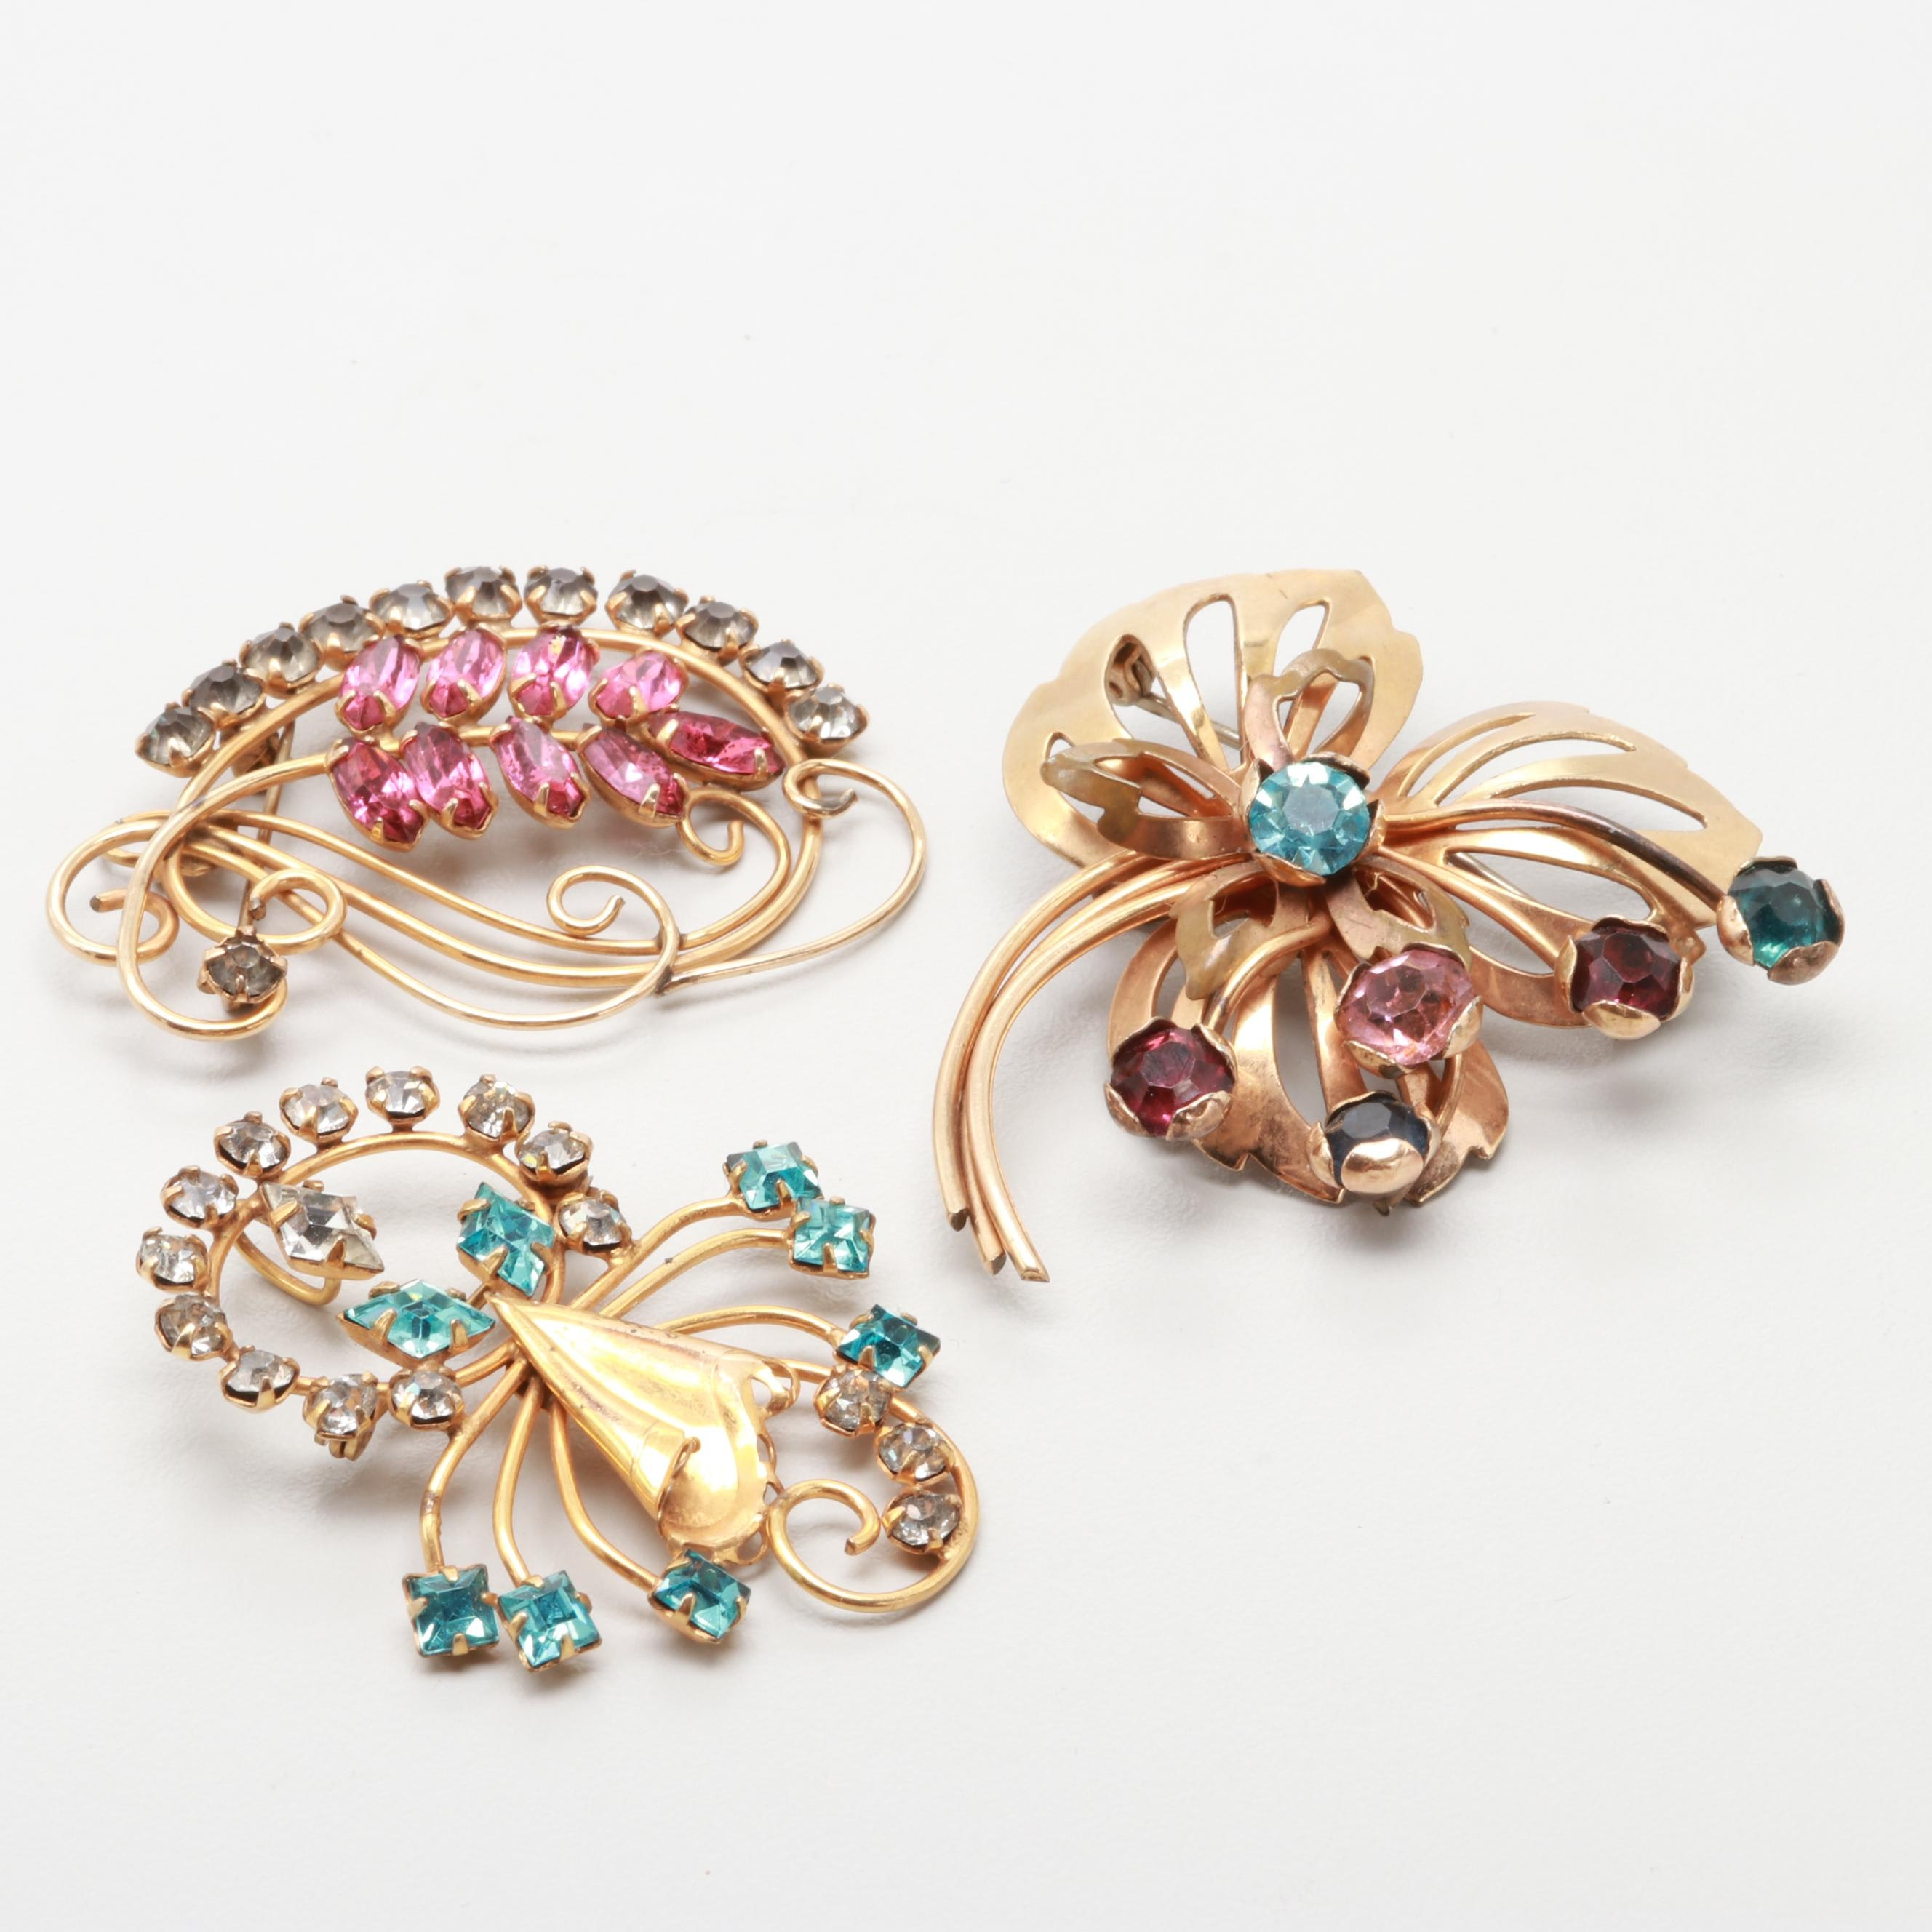 1940s Rhinestone Floral Brooches Including CRC Co